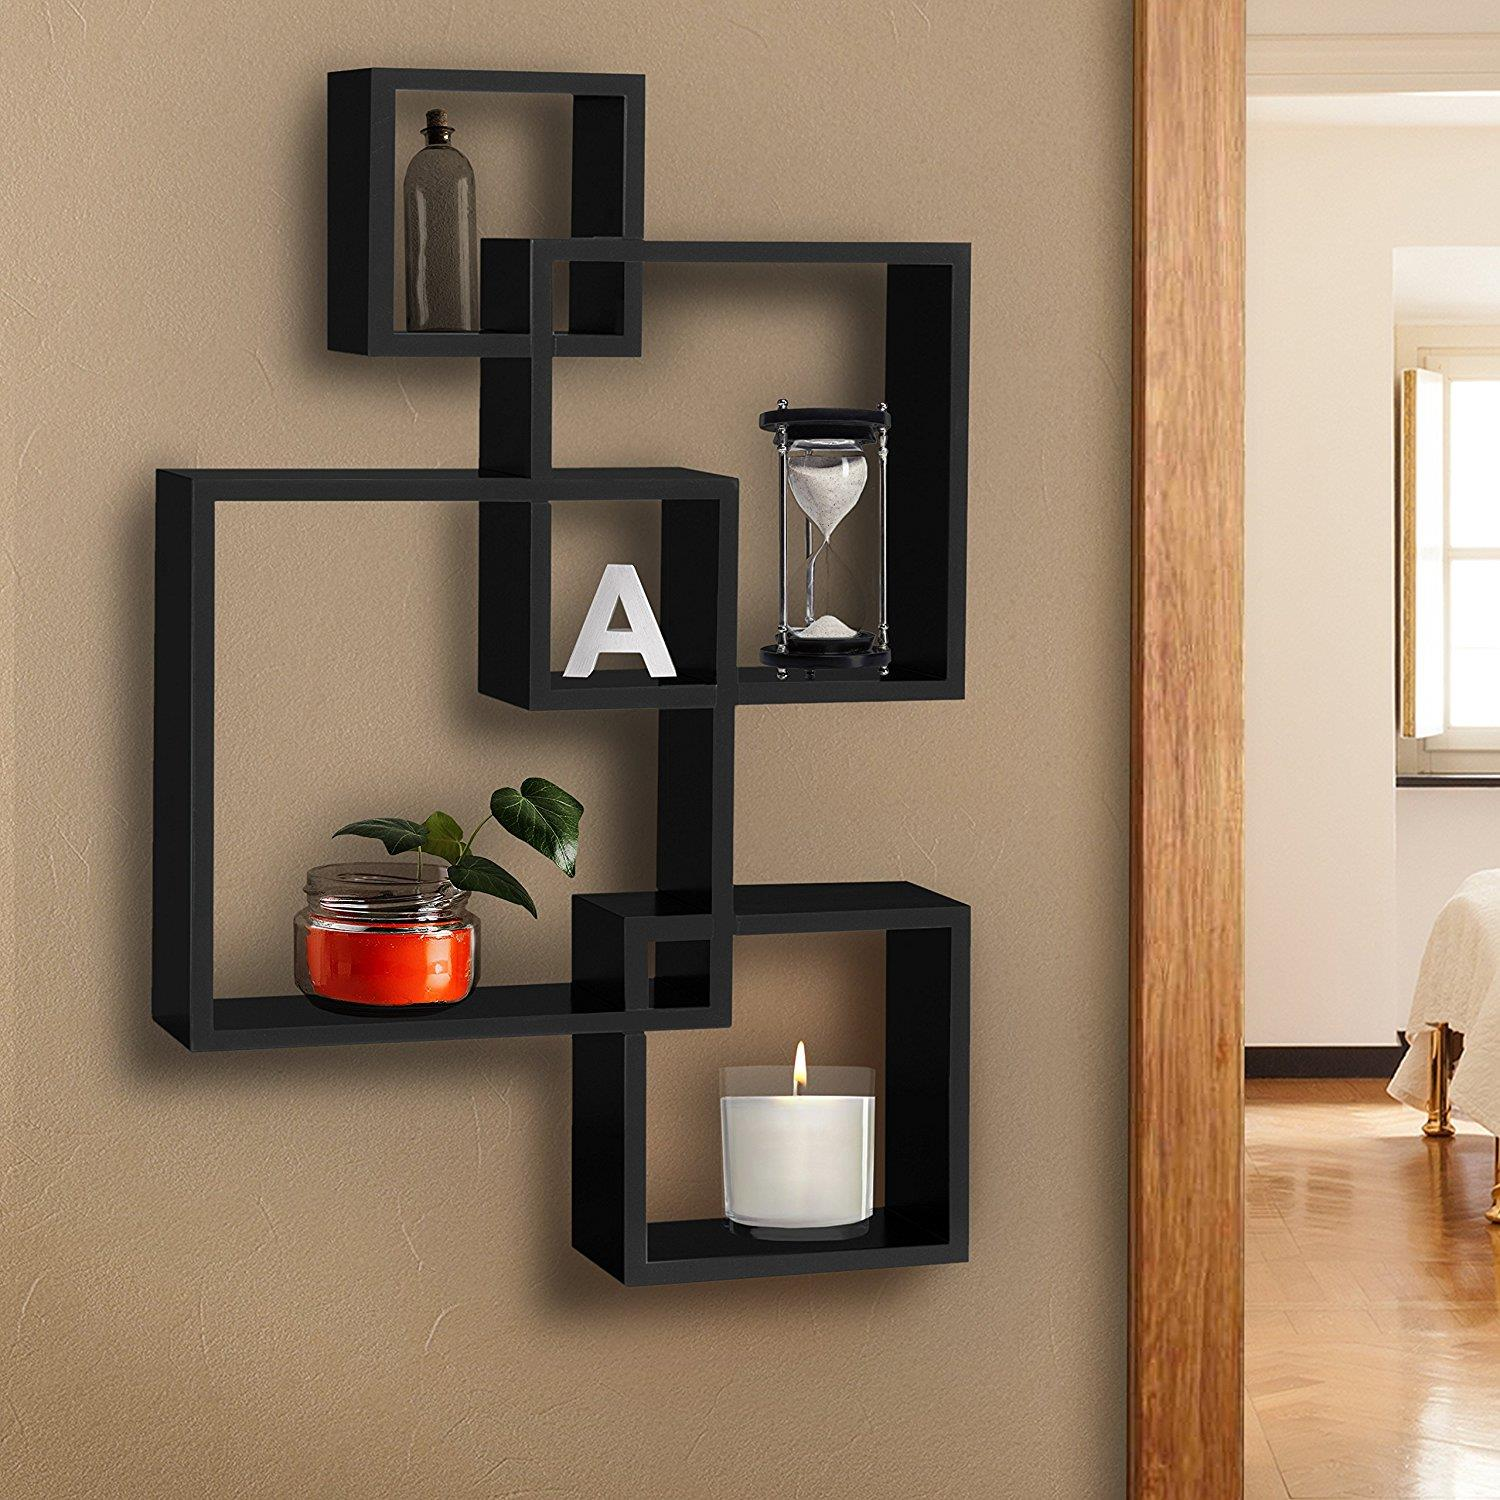 Details About Wooden Modern Storage Rack Wall Mounted Home Floating Shelf Organizer Decor